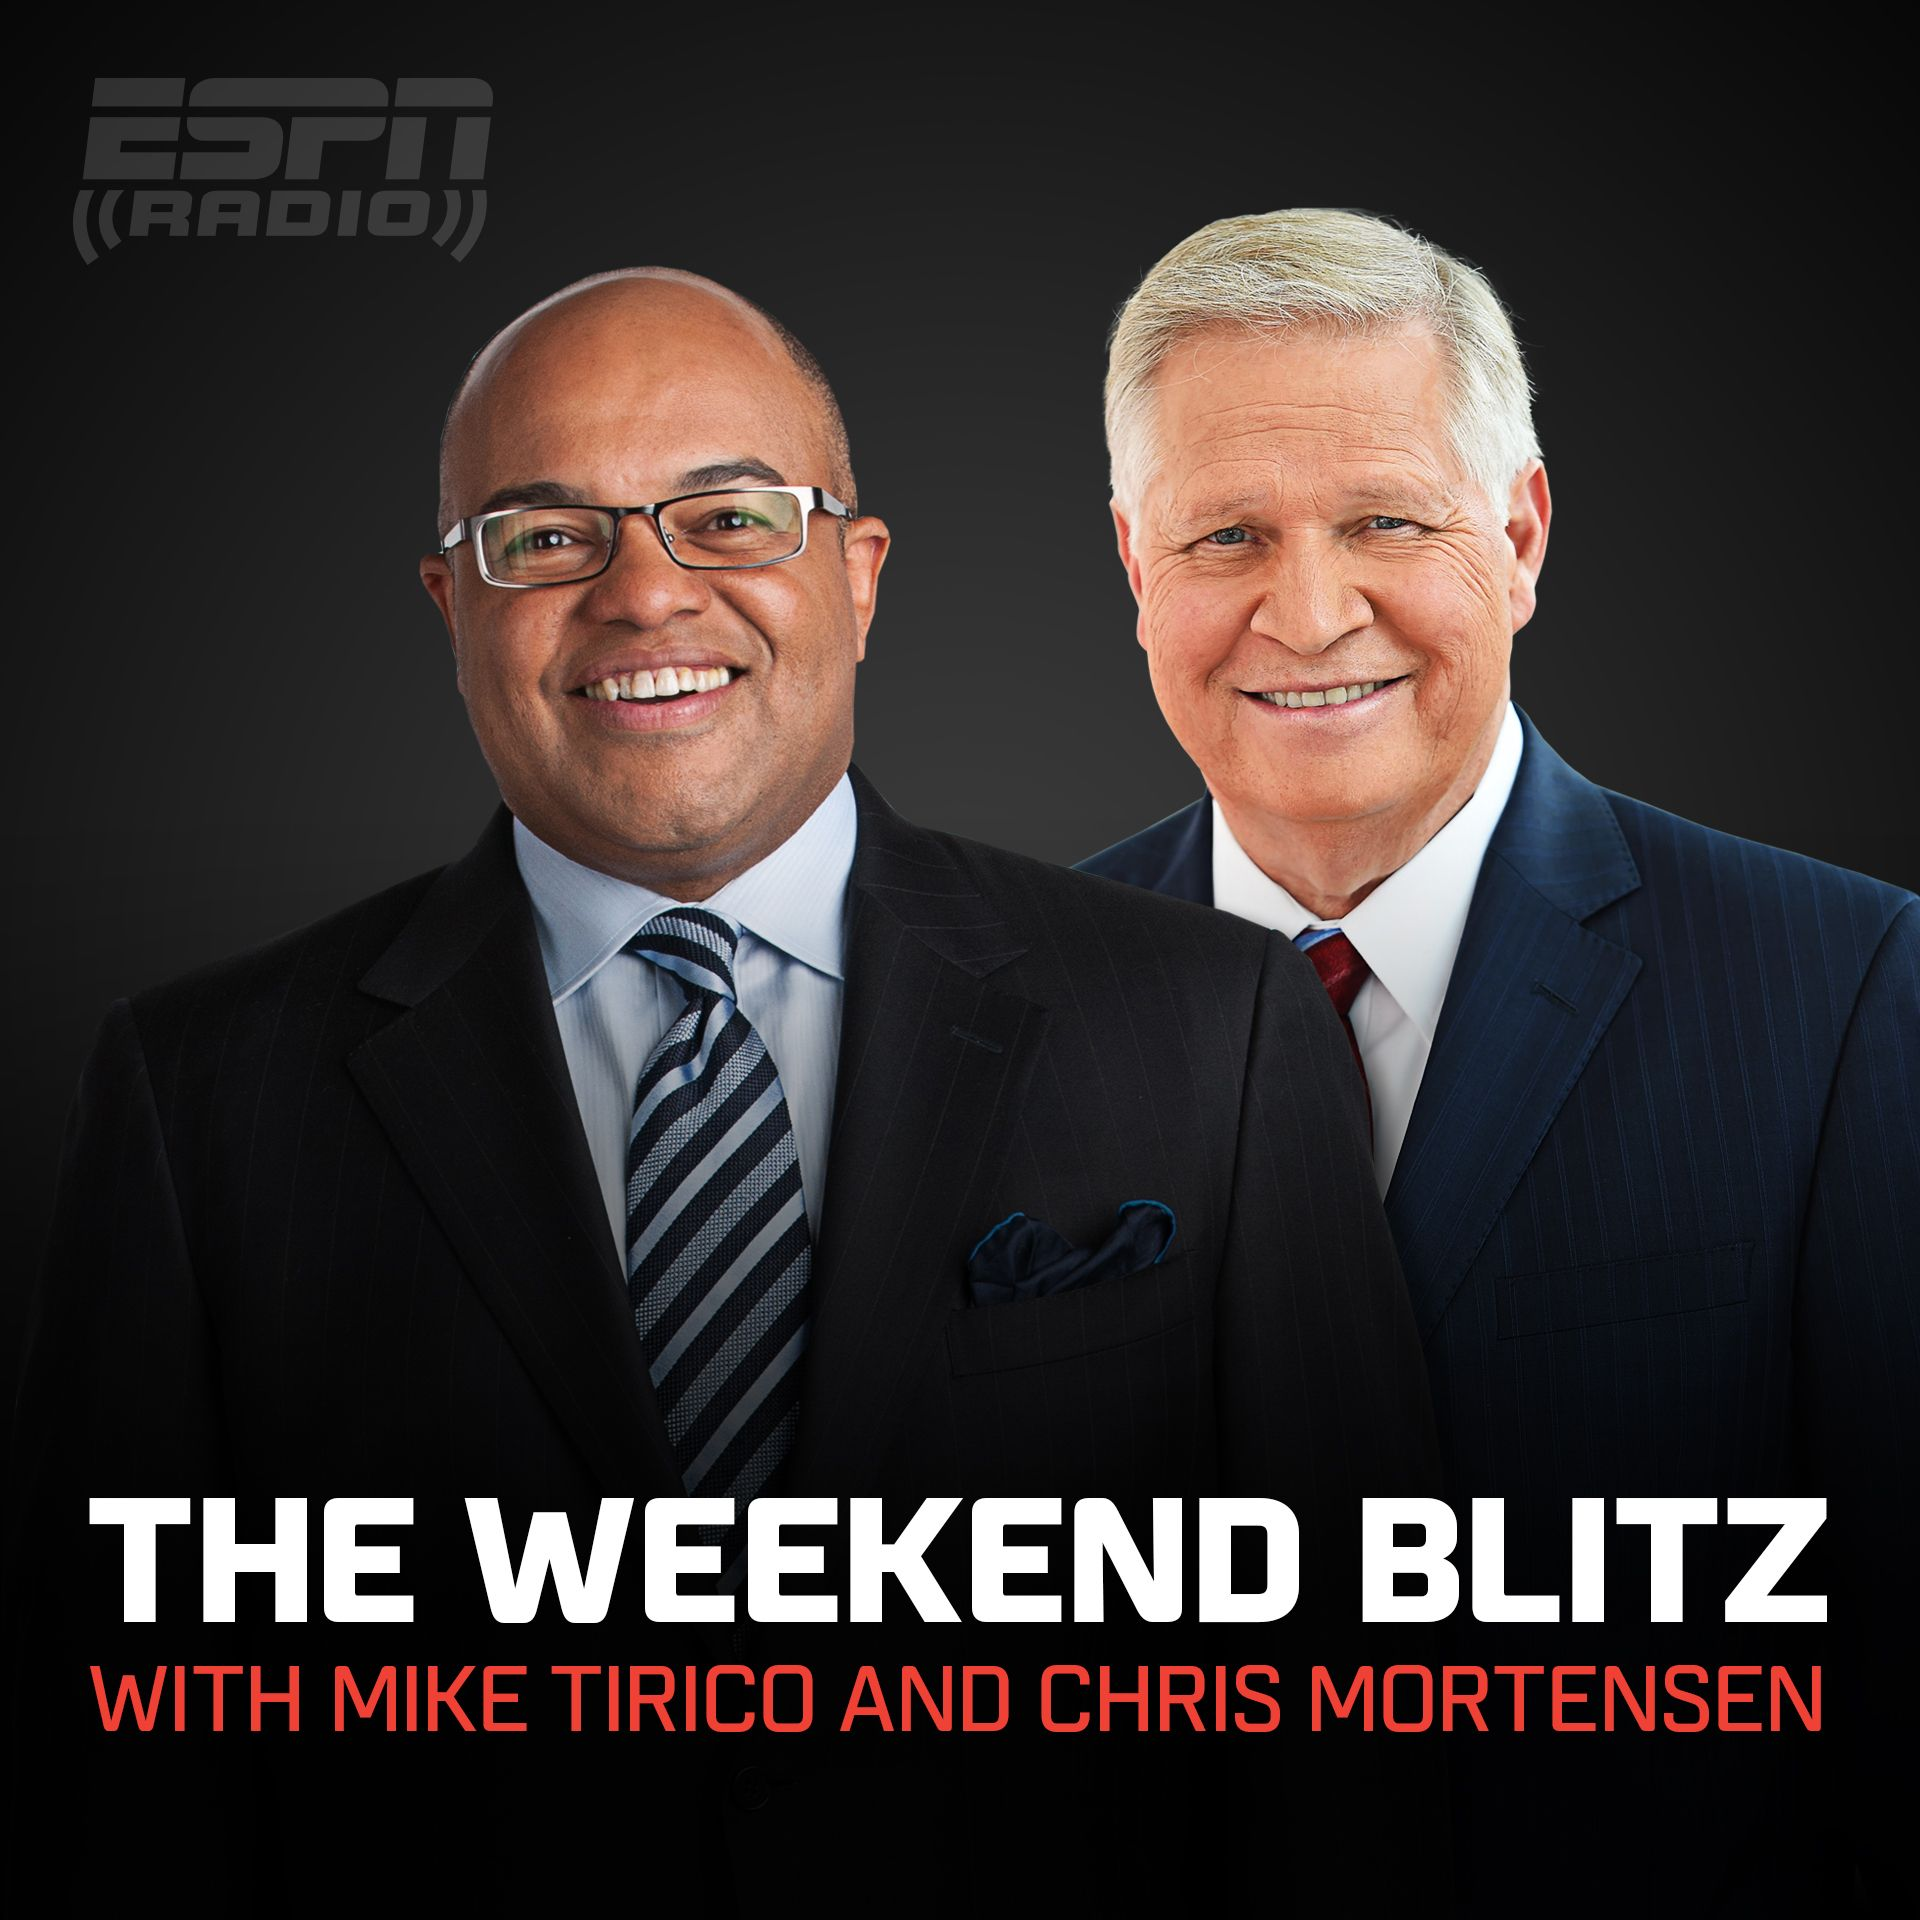 The Weekend Blitz